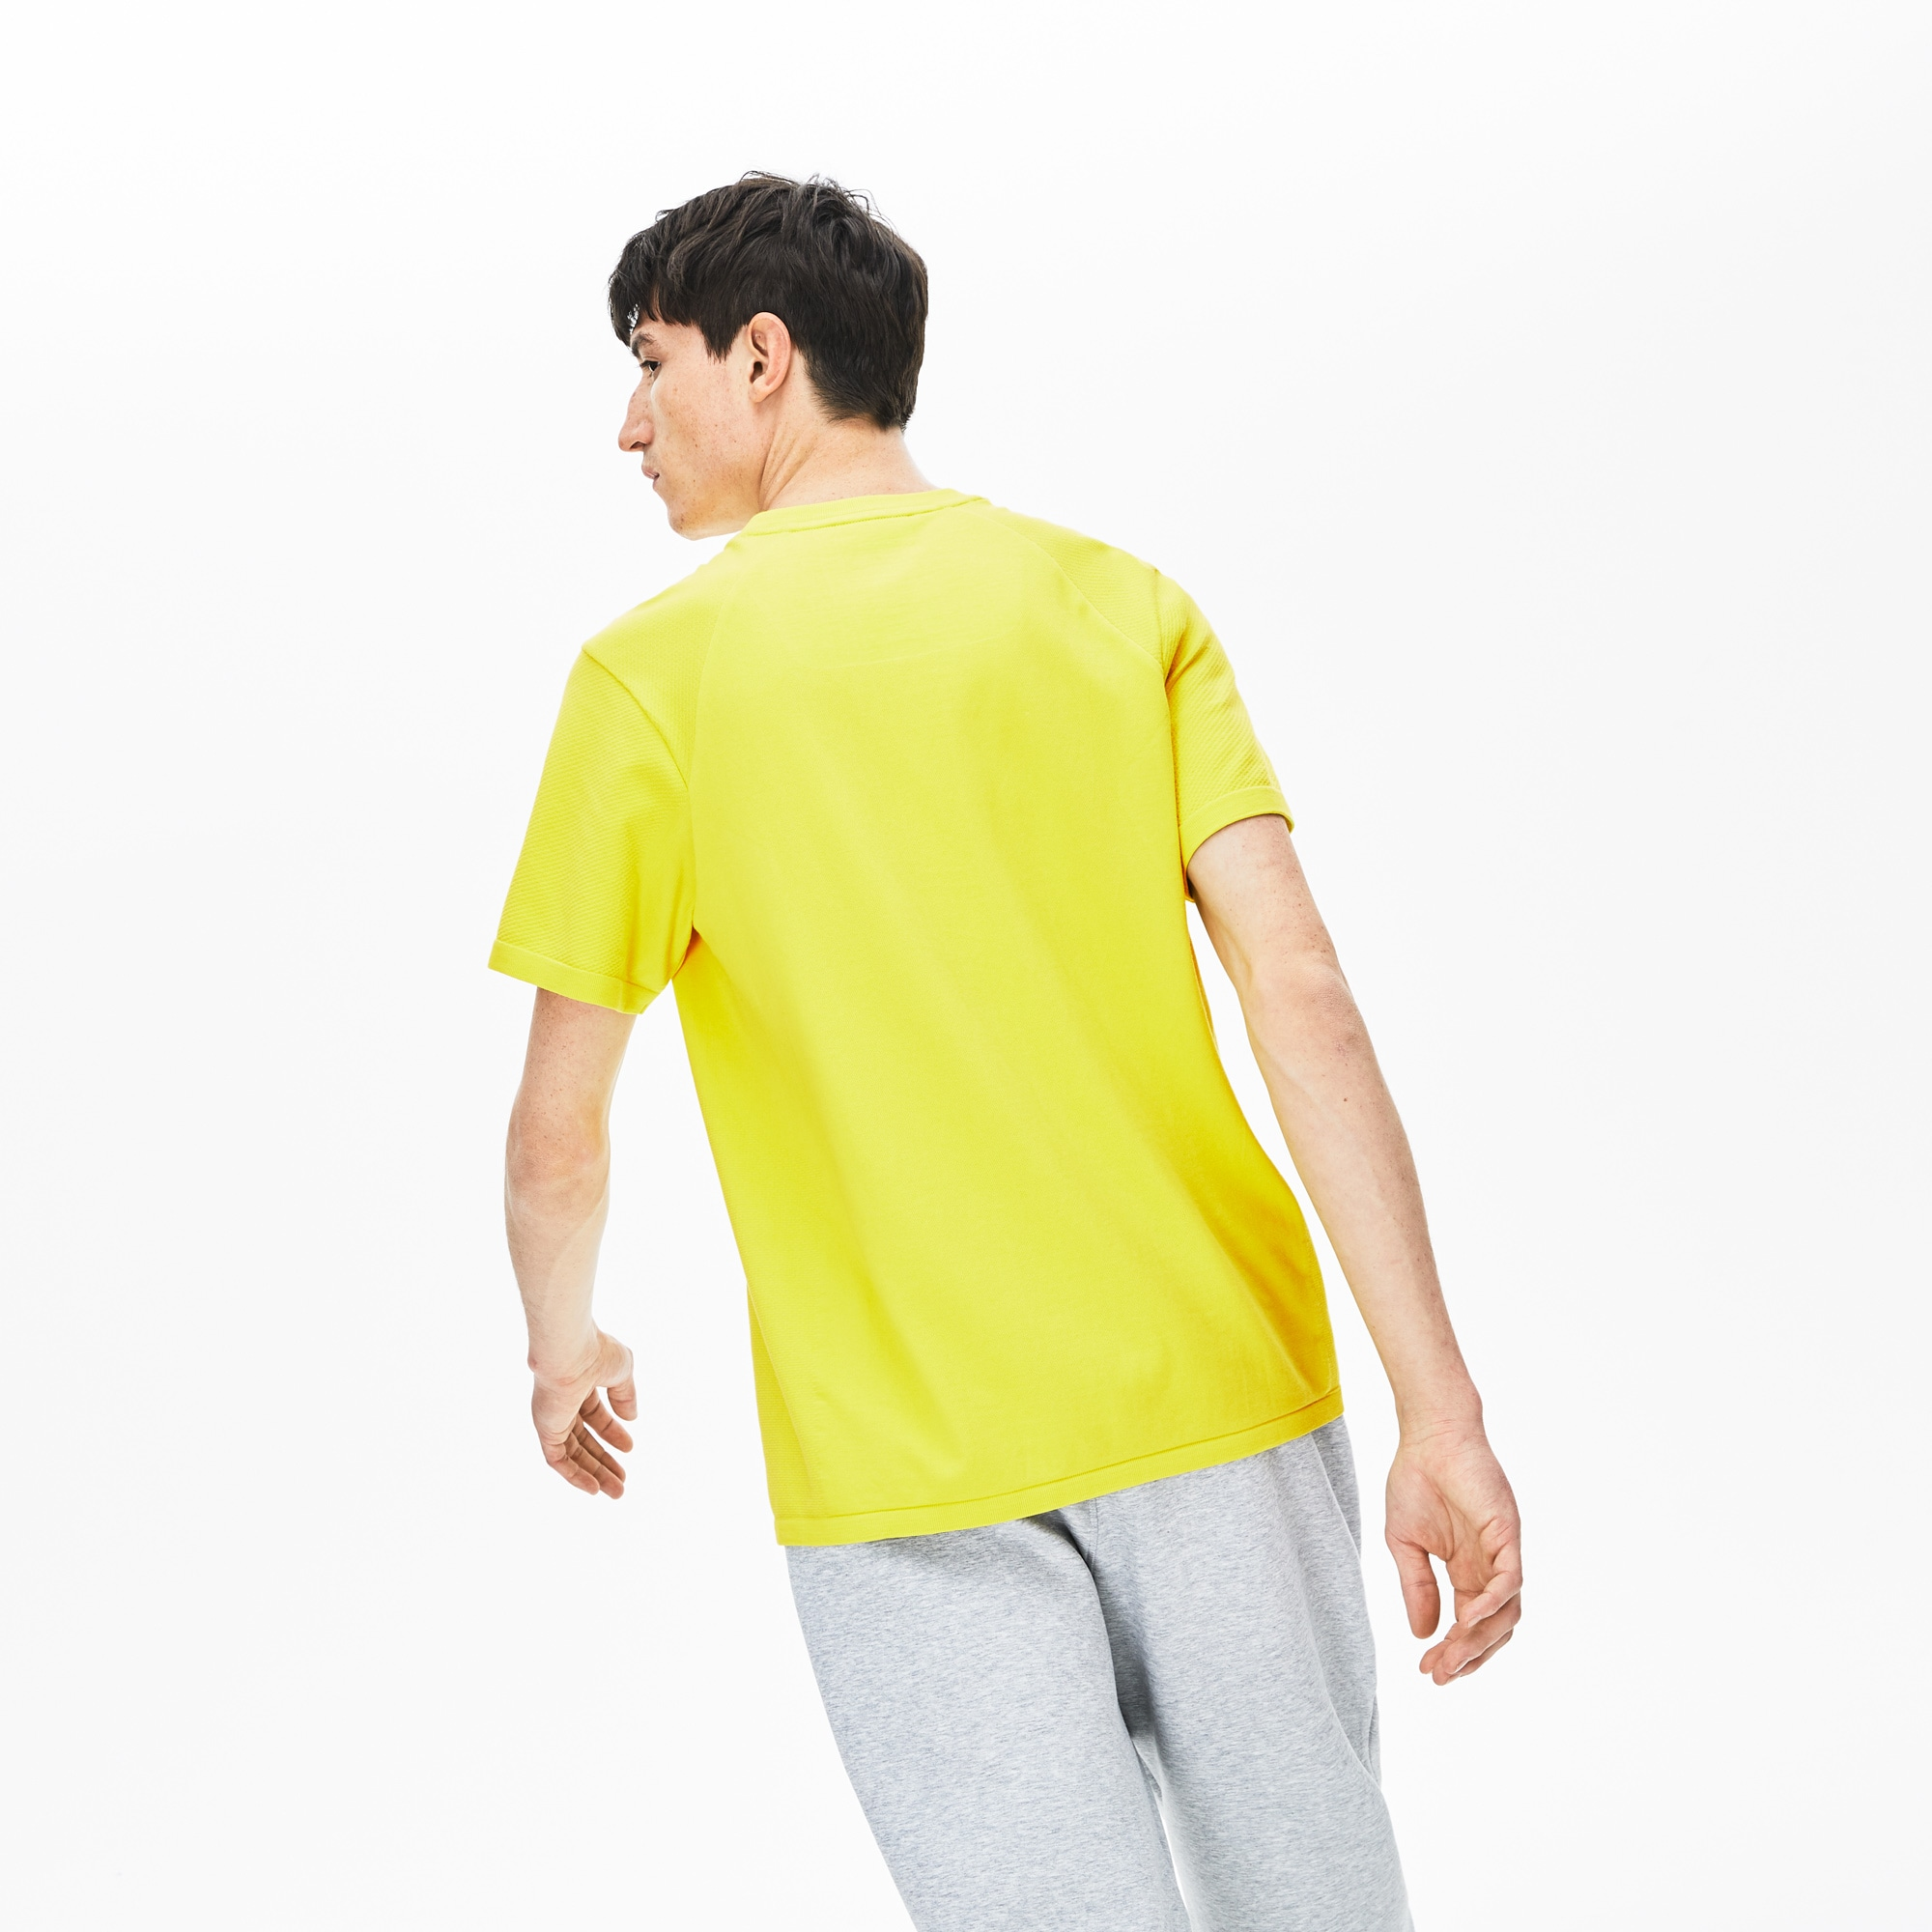 Men's Lacoste Motion Breathable Seamless T-shirt